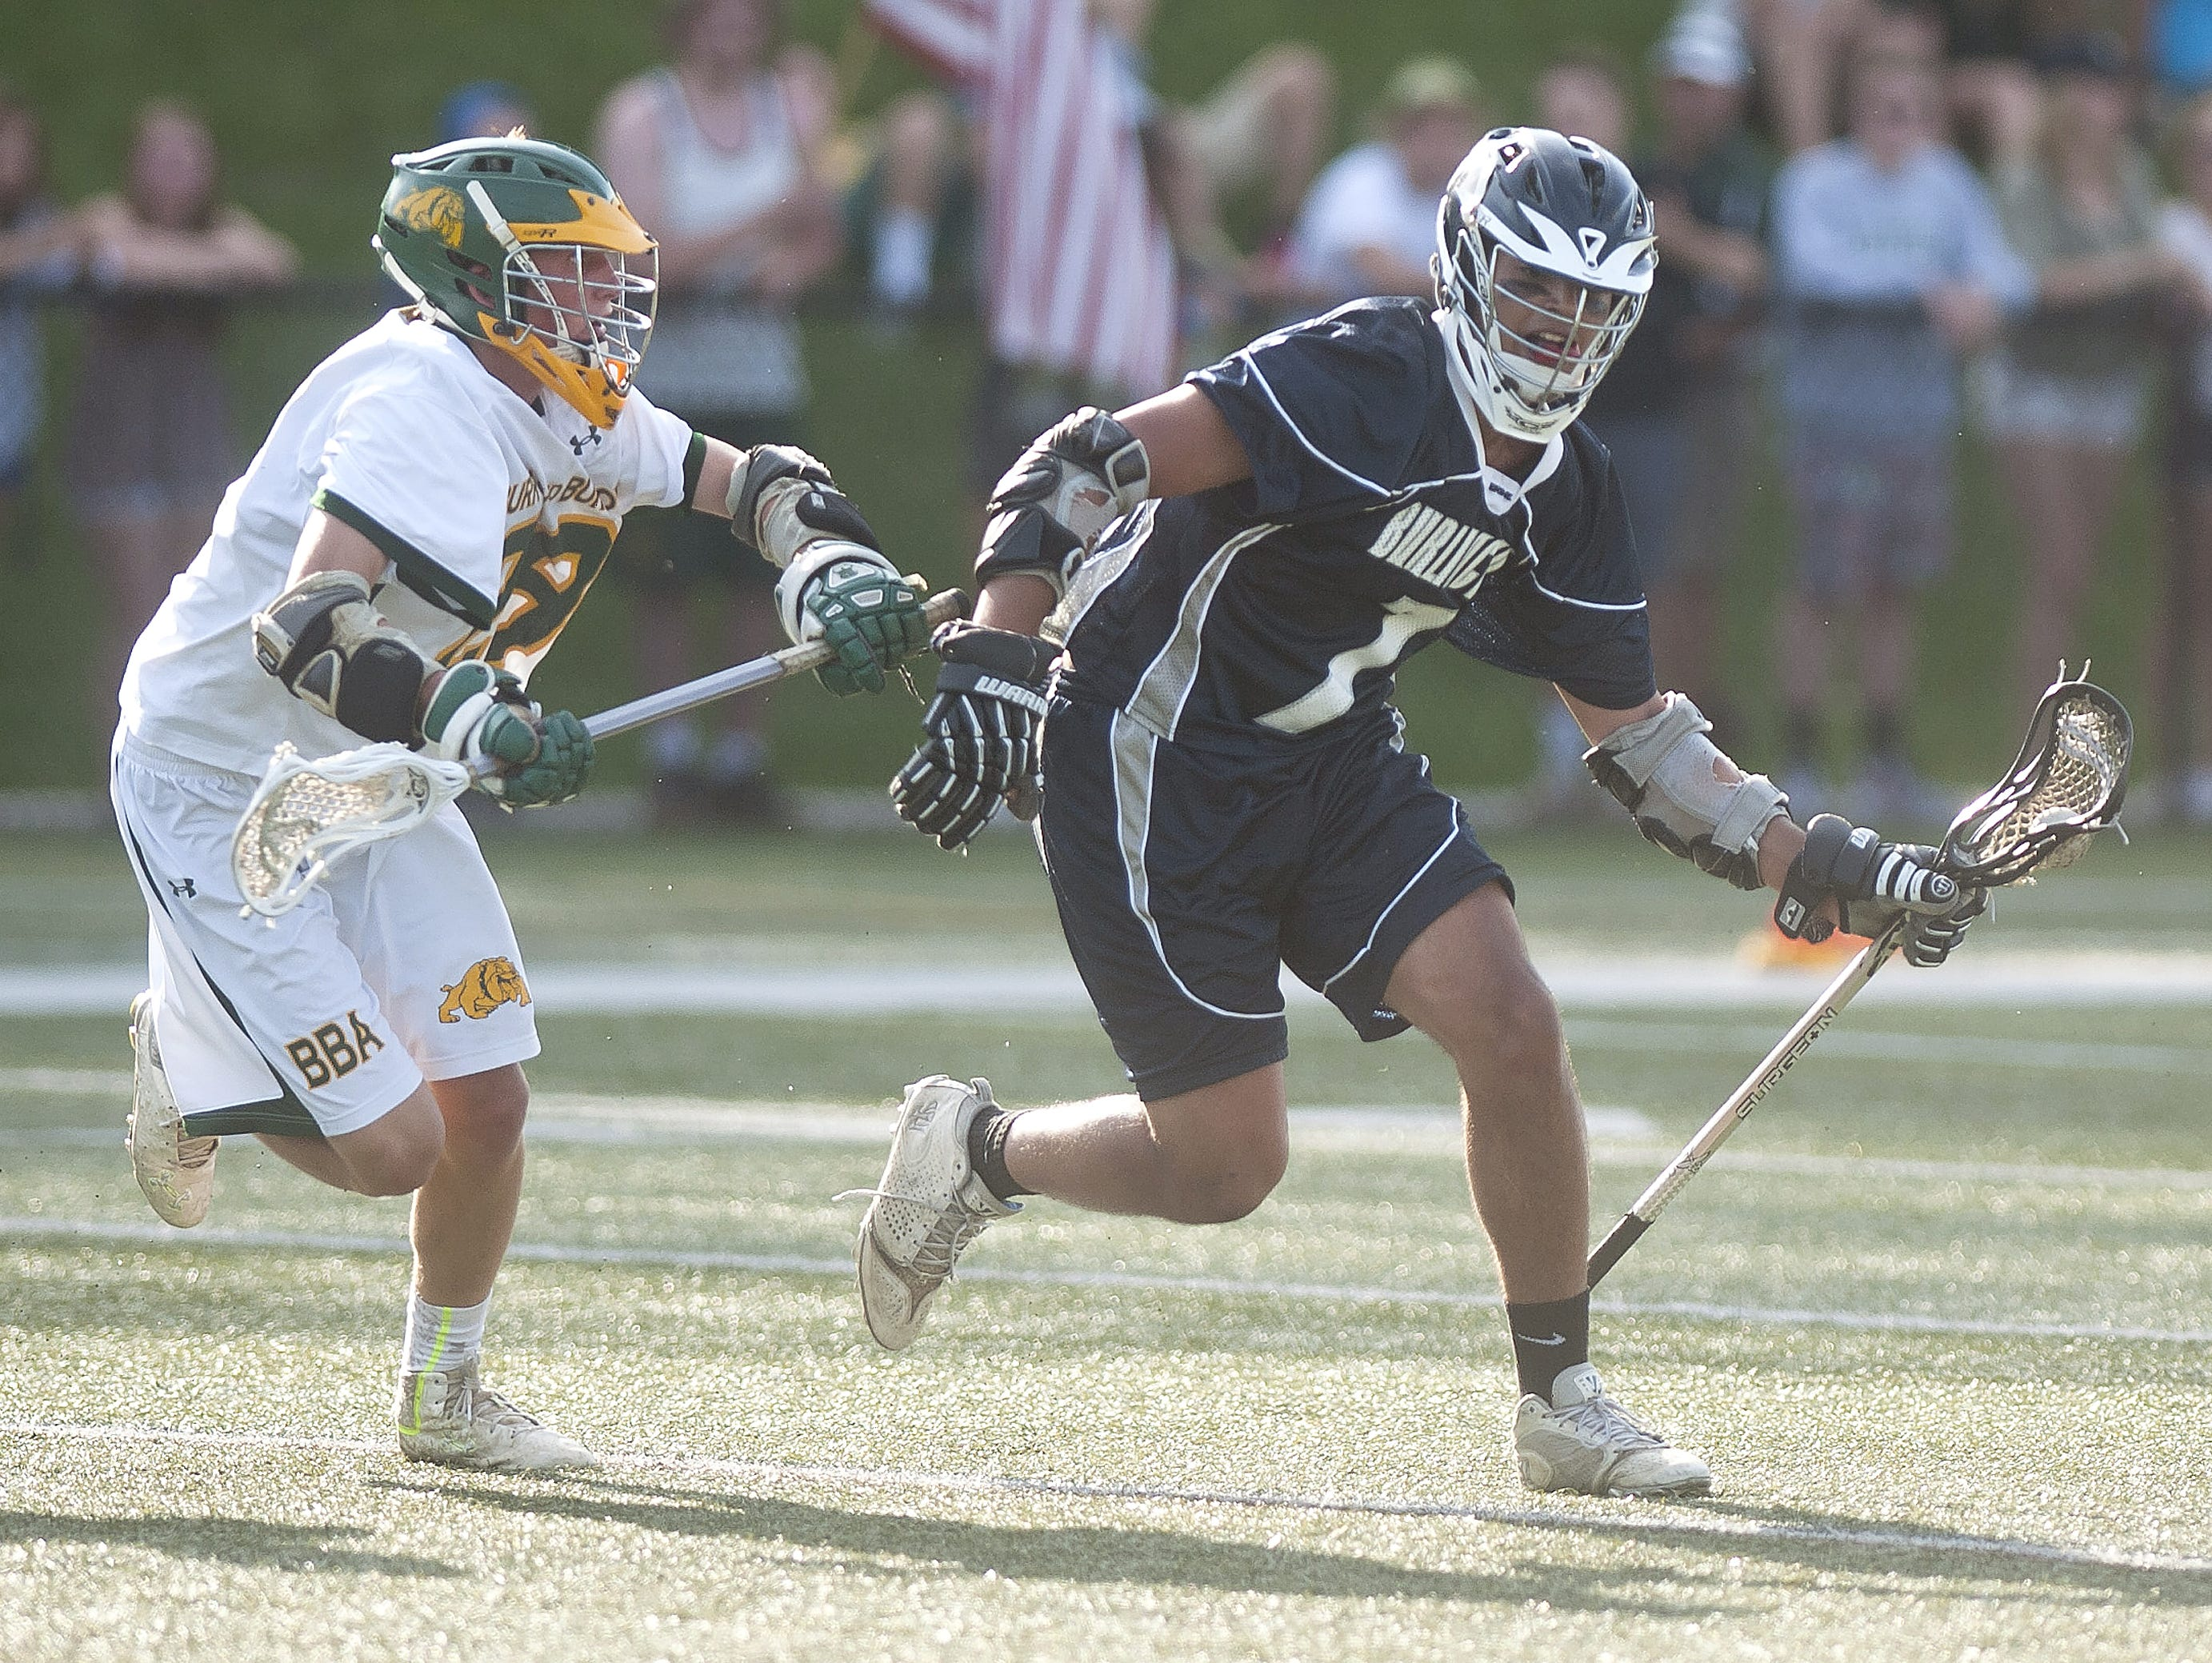 Burlington's Sevin Gulfield, right, controls the ball against a Burr and Burton defender during the Division II boys lacrosse championship game on Thursday at Castleton State College.